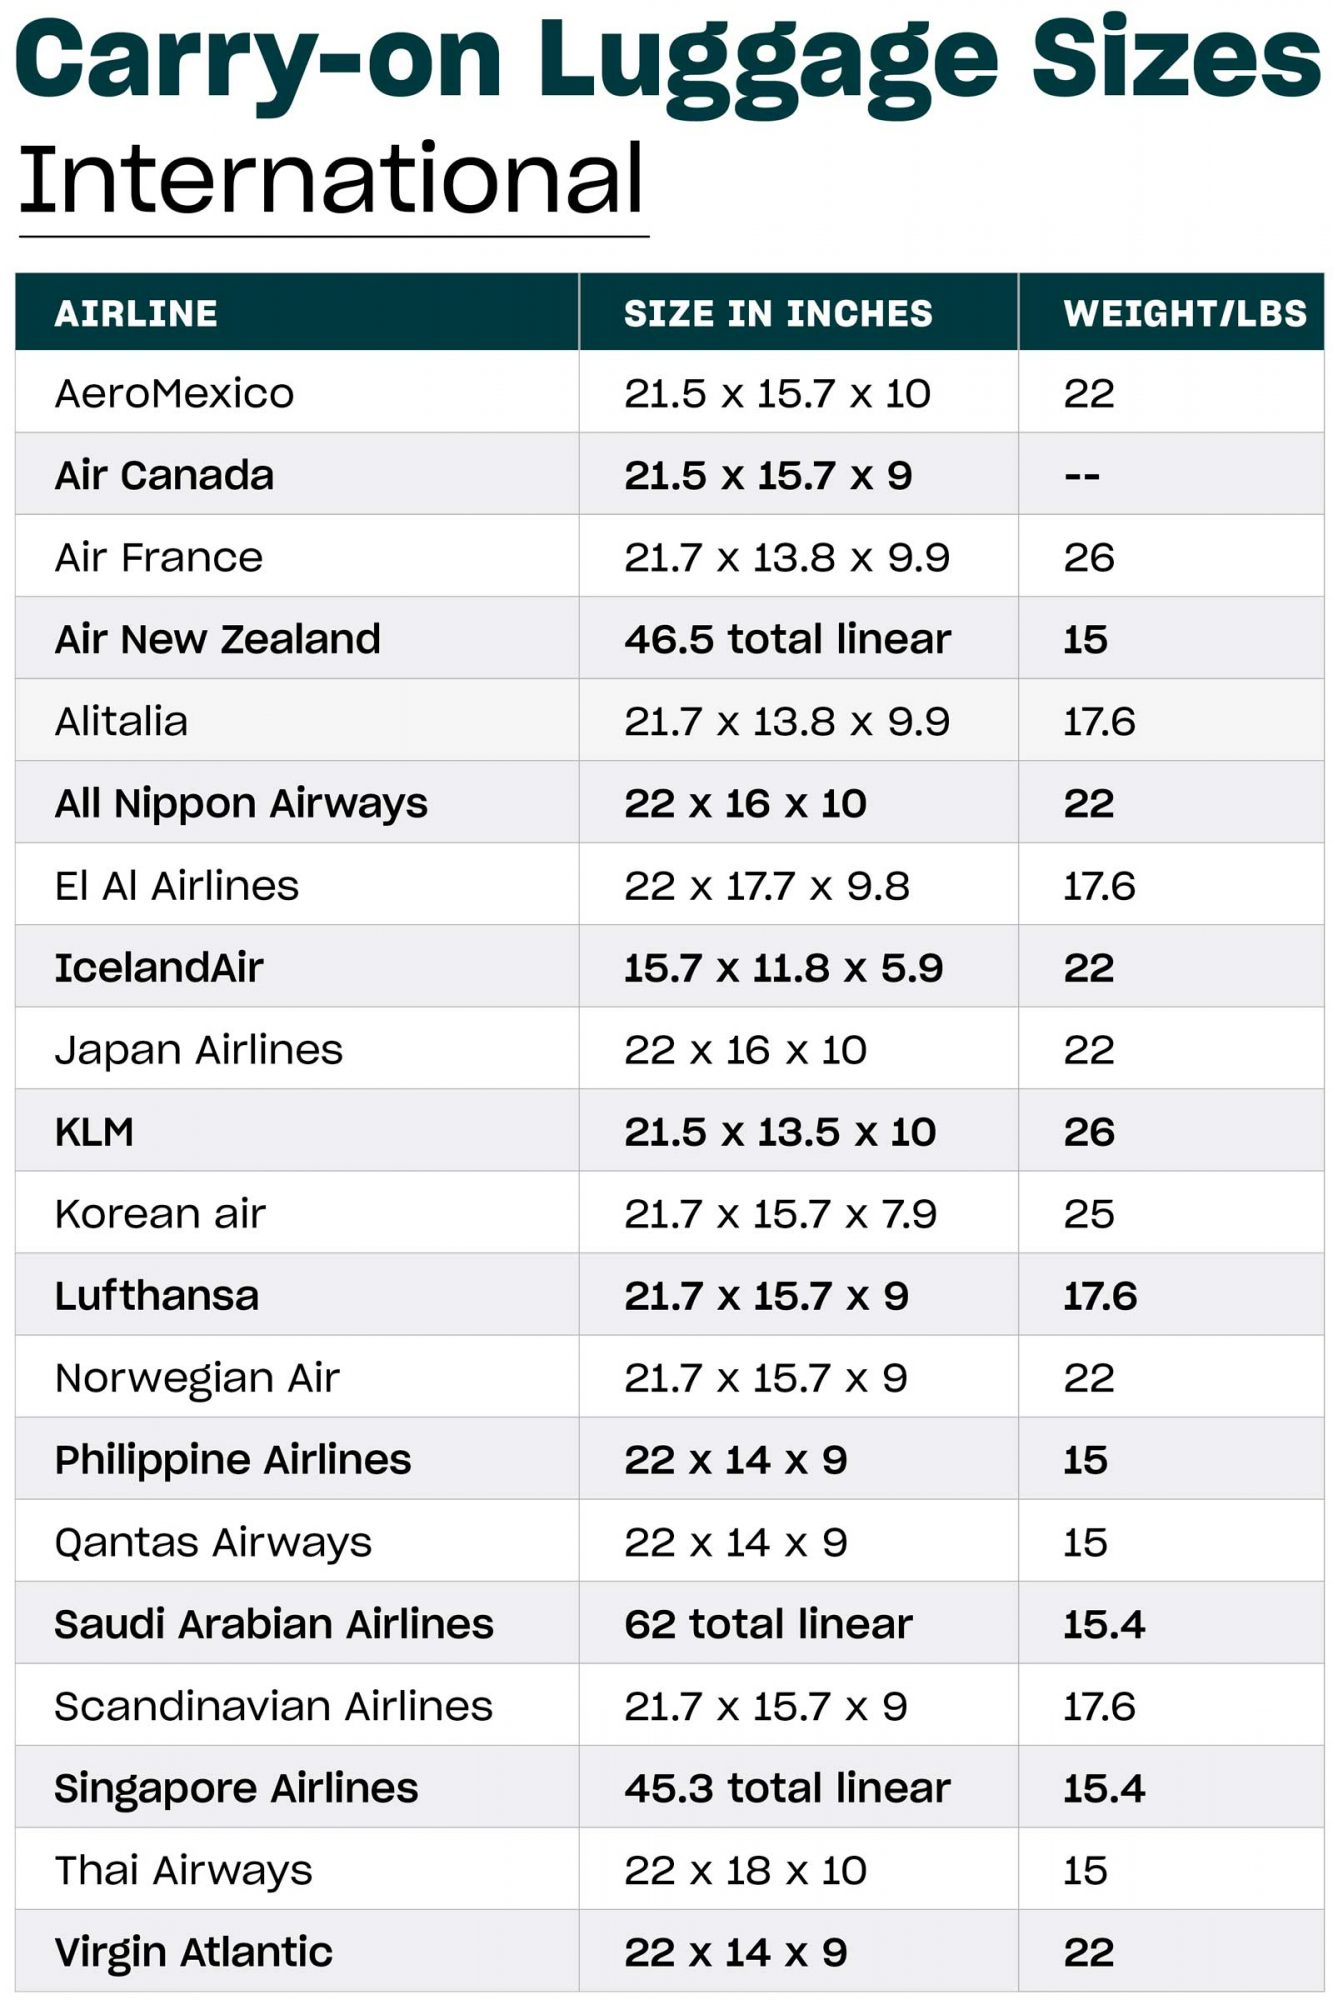 foto de A Carry-on Luggage Size Guide by Airline | Travel + Leisure